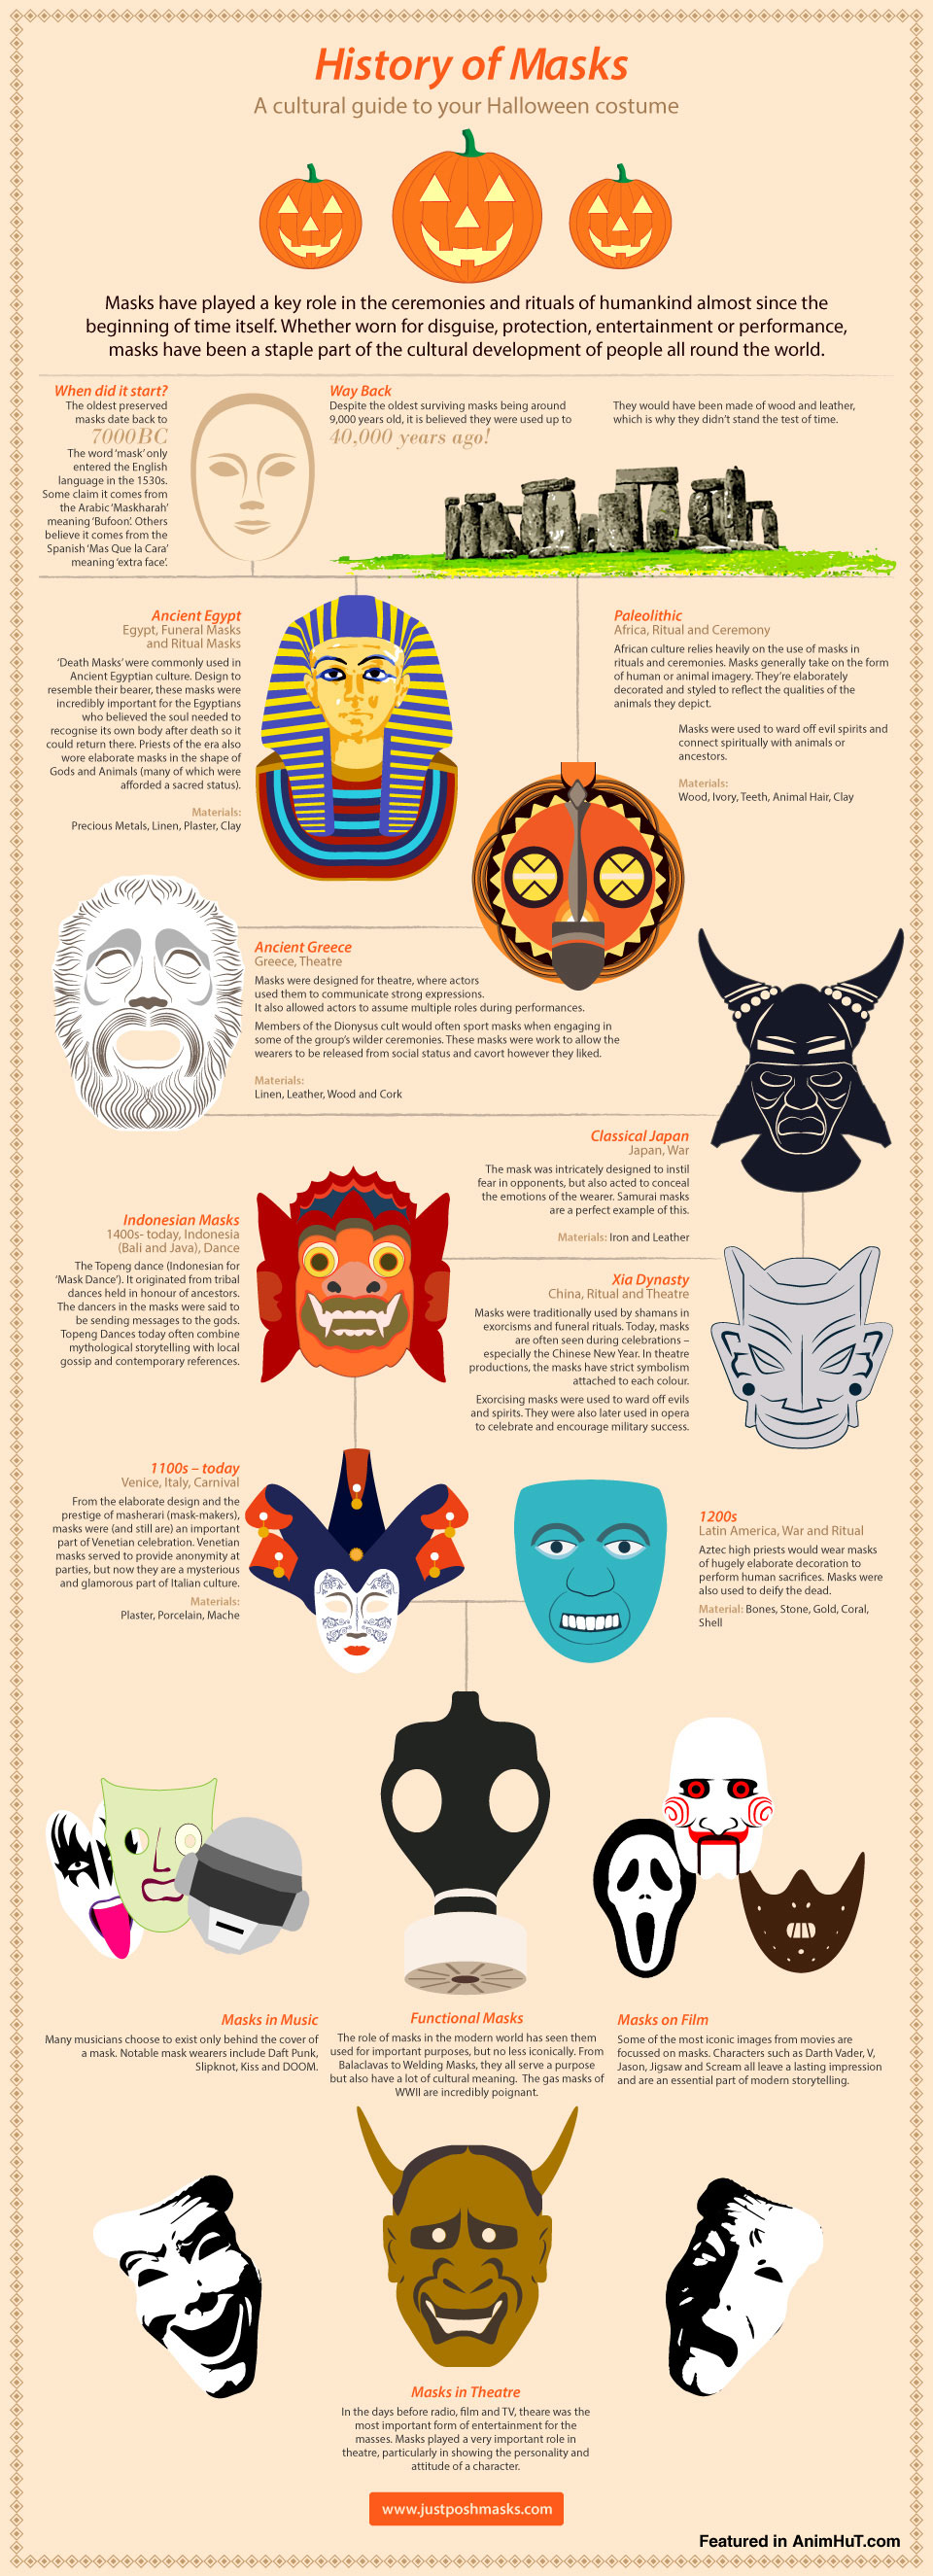 popular infographic on Halloween and Mask